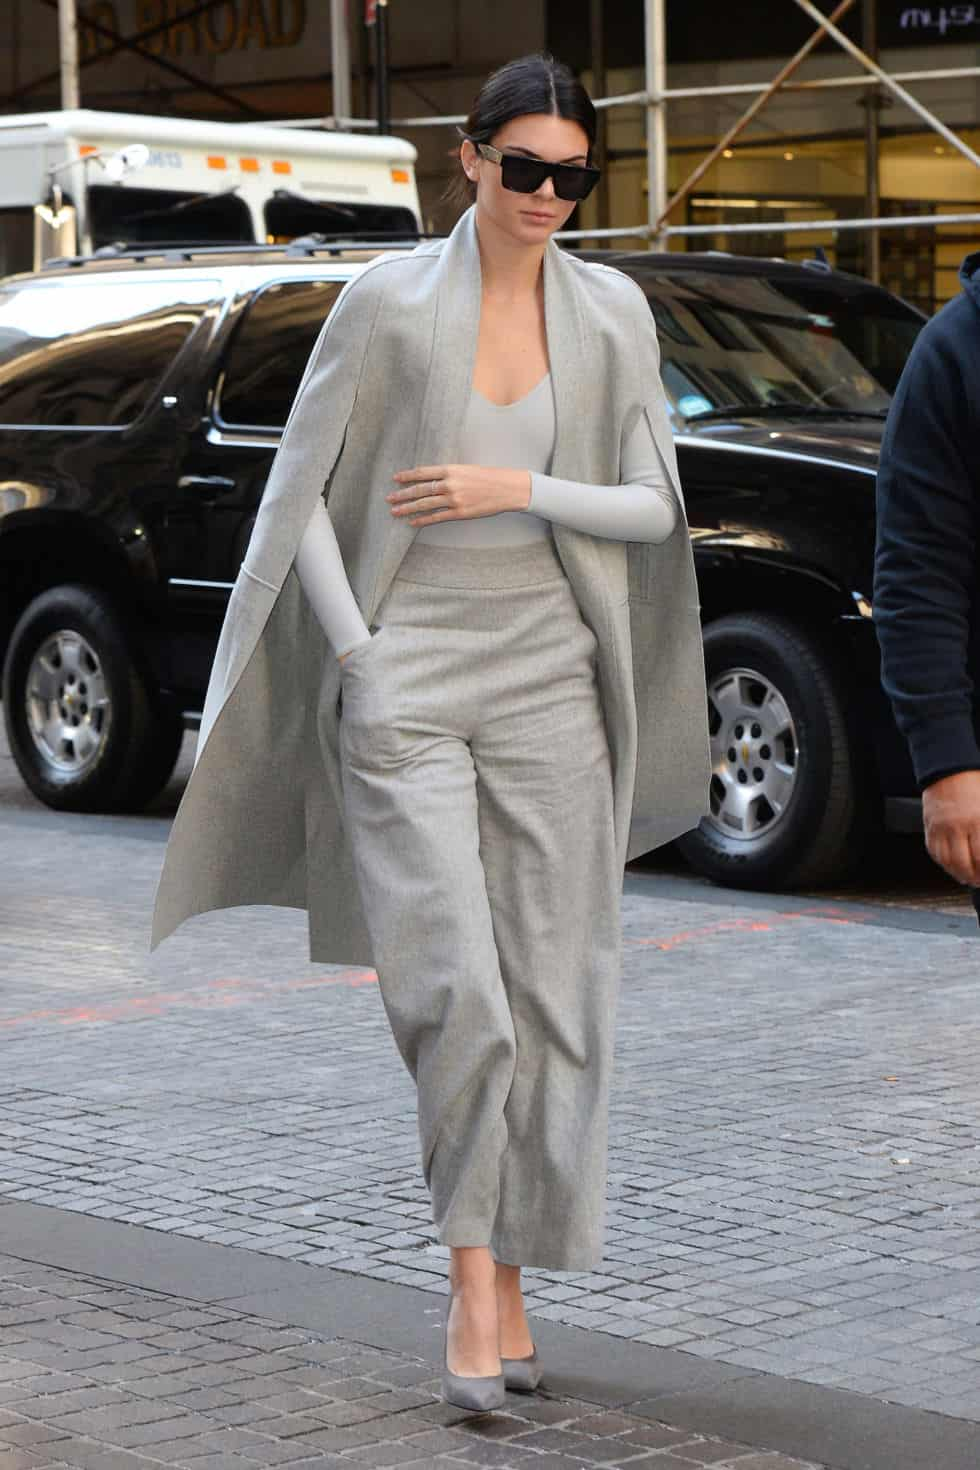 Why Kendall Jenner's Street Style Is The Best? – The